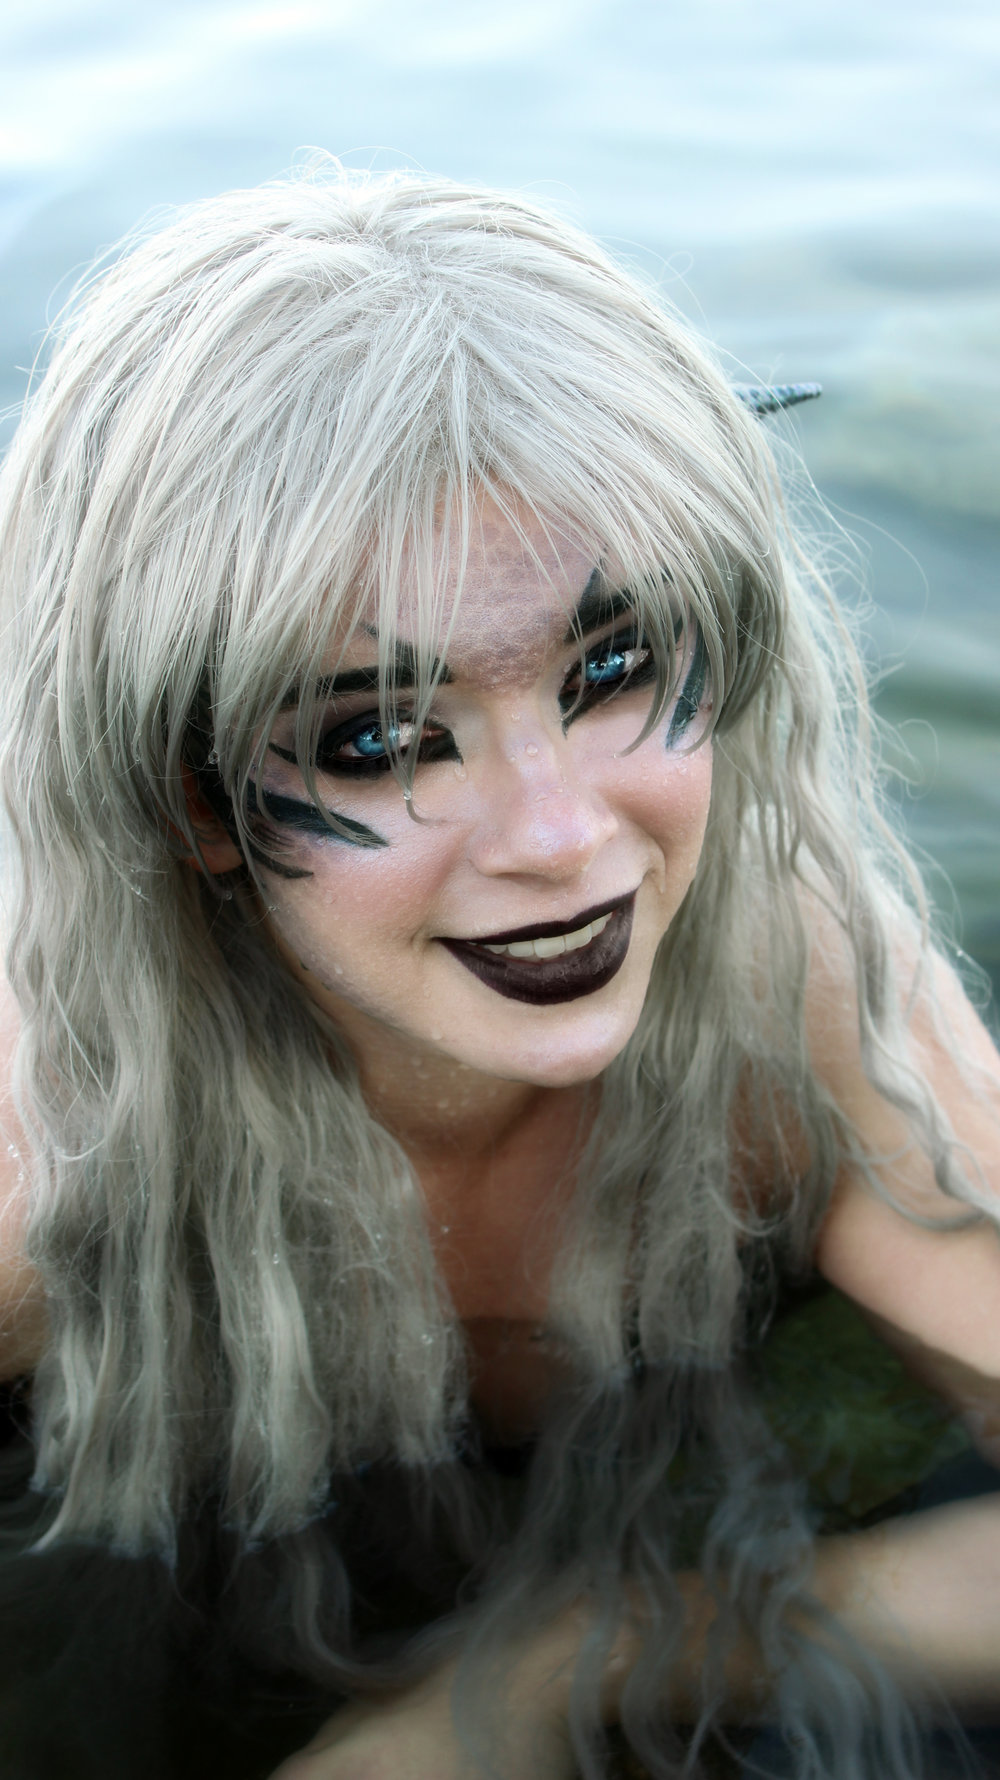 SIREN PICTURES AND VIDEOS: Could this be a real life siren? Sirens are creatures from mythology who's appearance and tendencies have changed over the course of human history. From bird-like predators to sea-faring enchantresses, sirens have a long history! Mermaid Phantom is a water fiend of Lake Michigan. To see her pictures and watch her videos, please click this image. #sirens